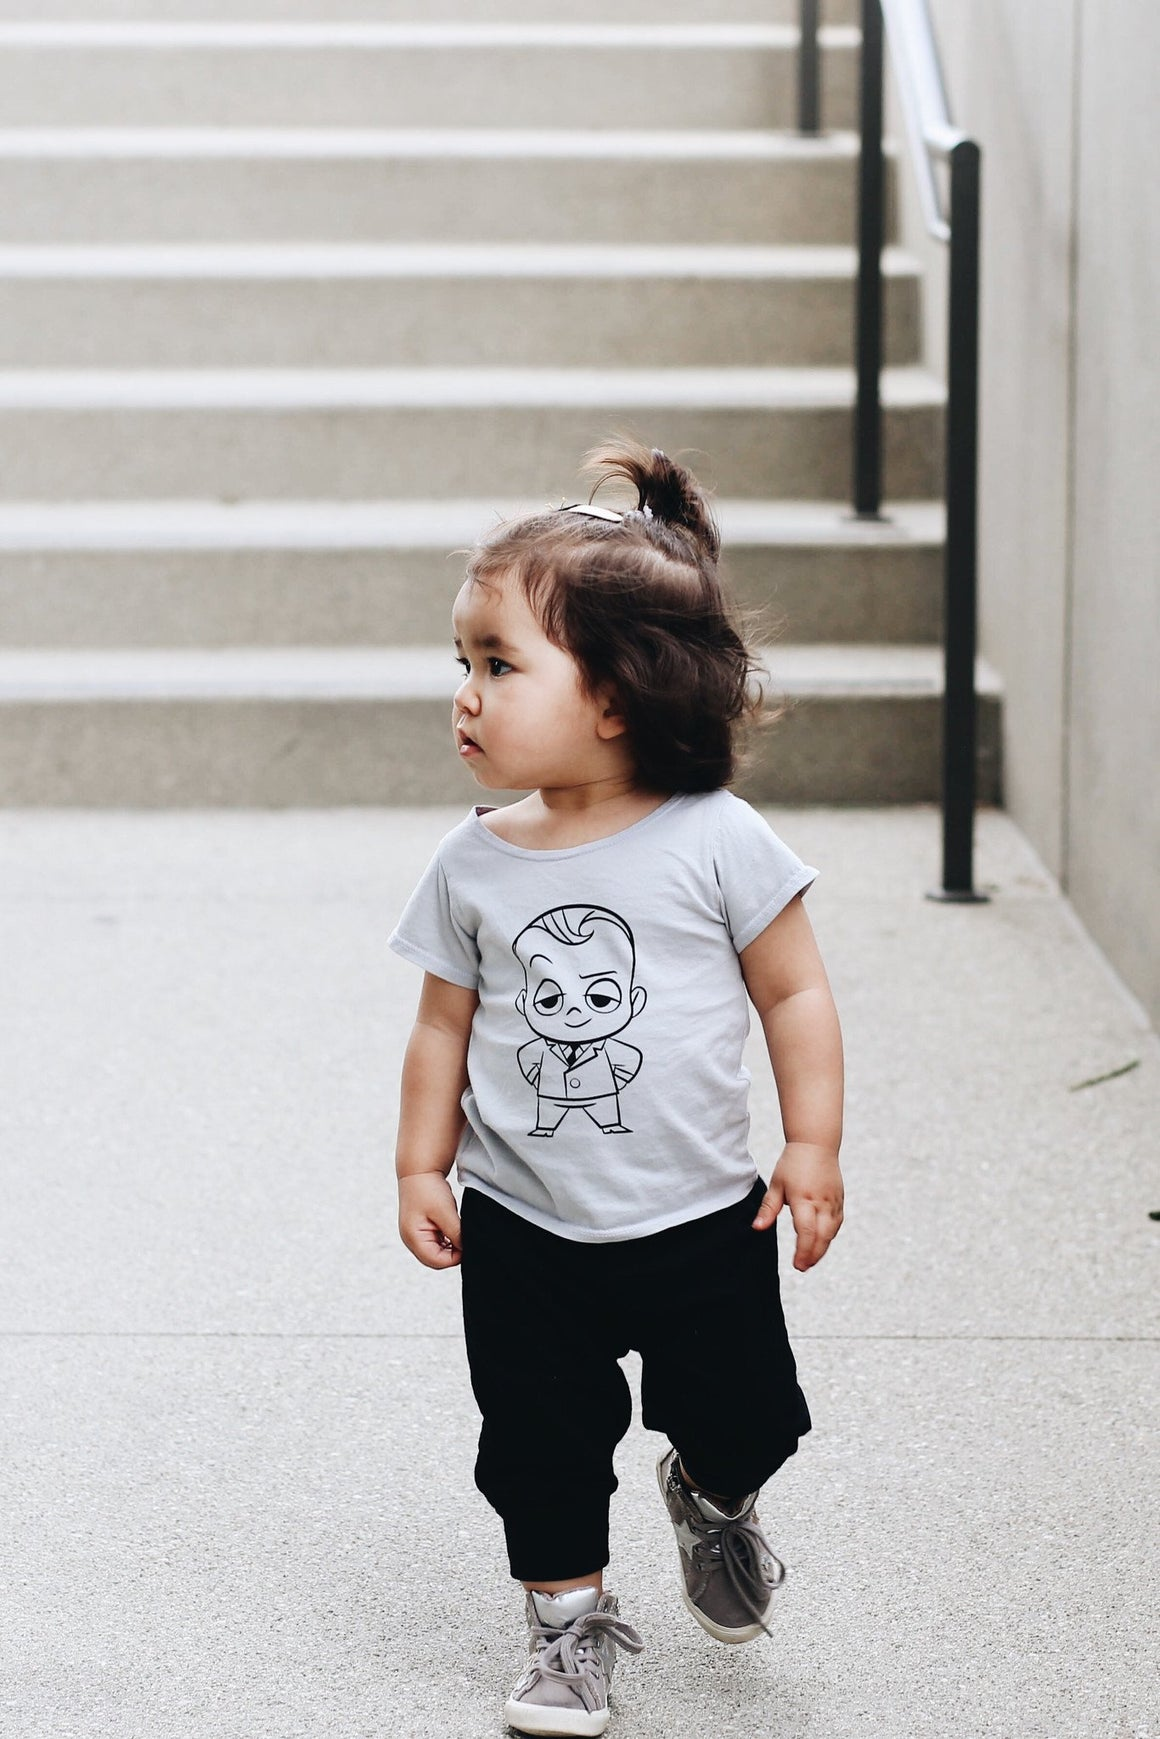 Kira Kids x The Boss Baby: The Boss Graphic T-shirt, Light Grey